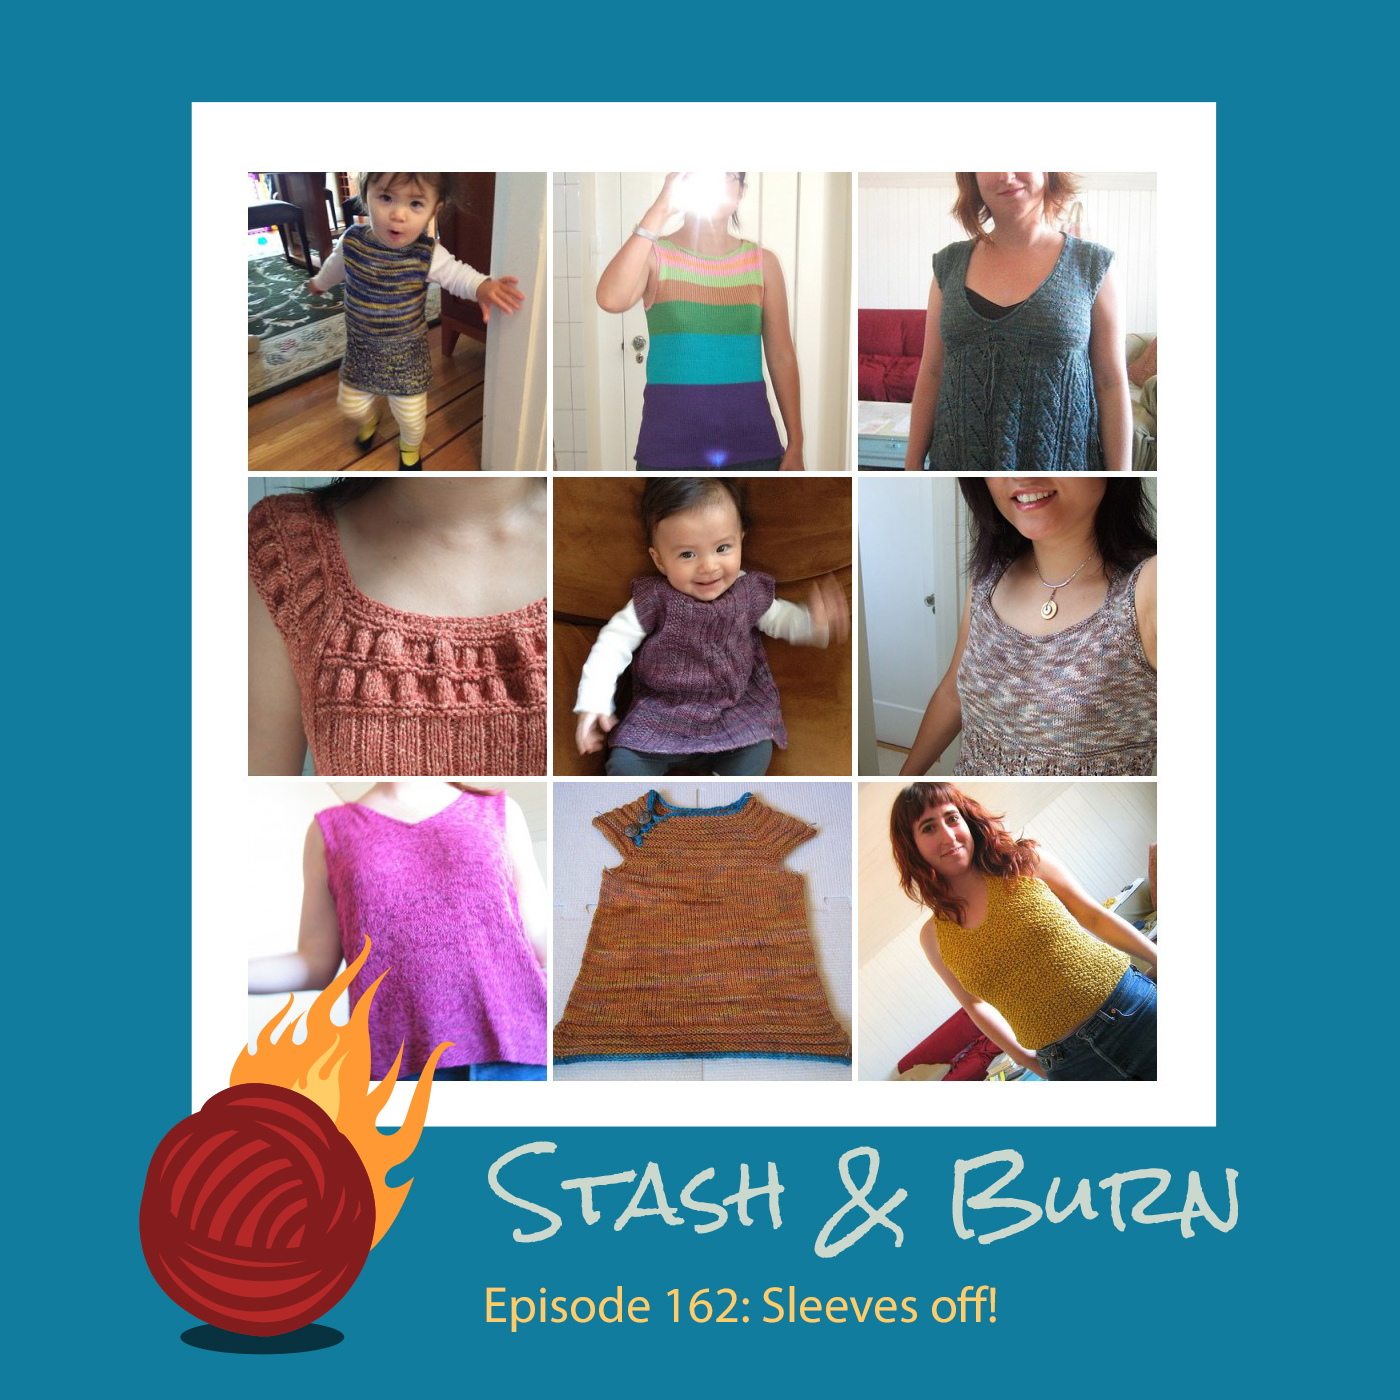 Episode 162: Sleeves off!